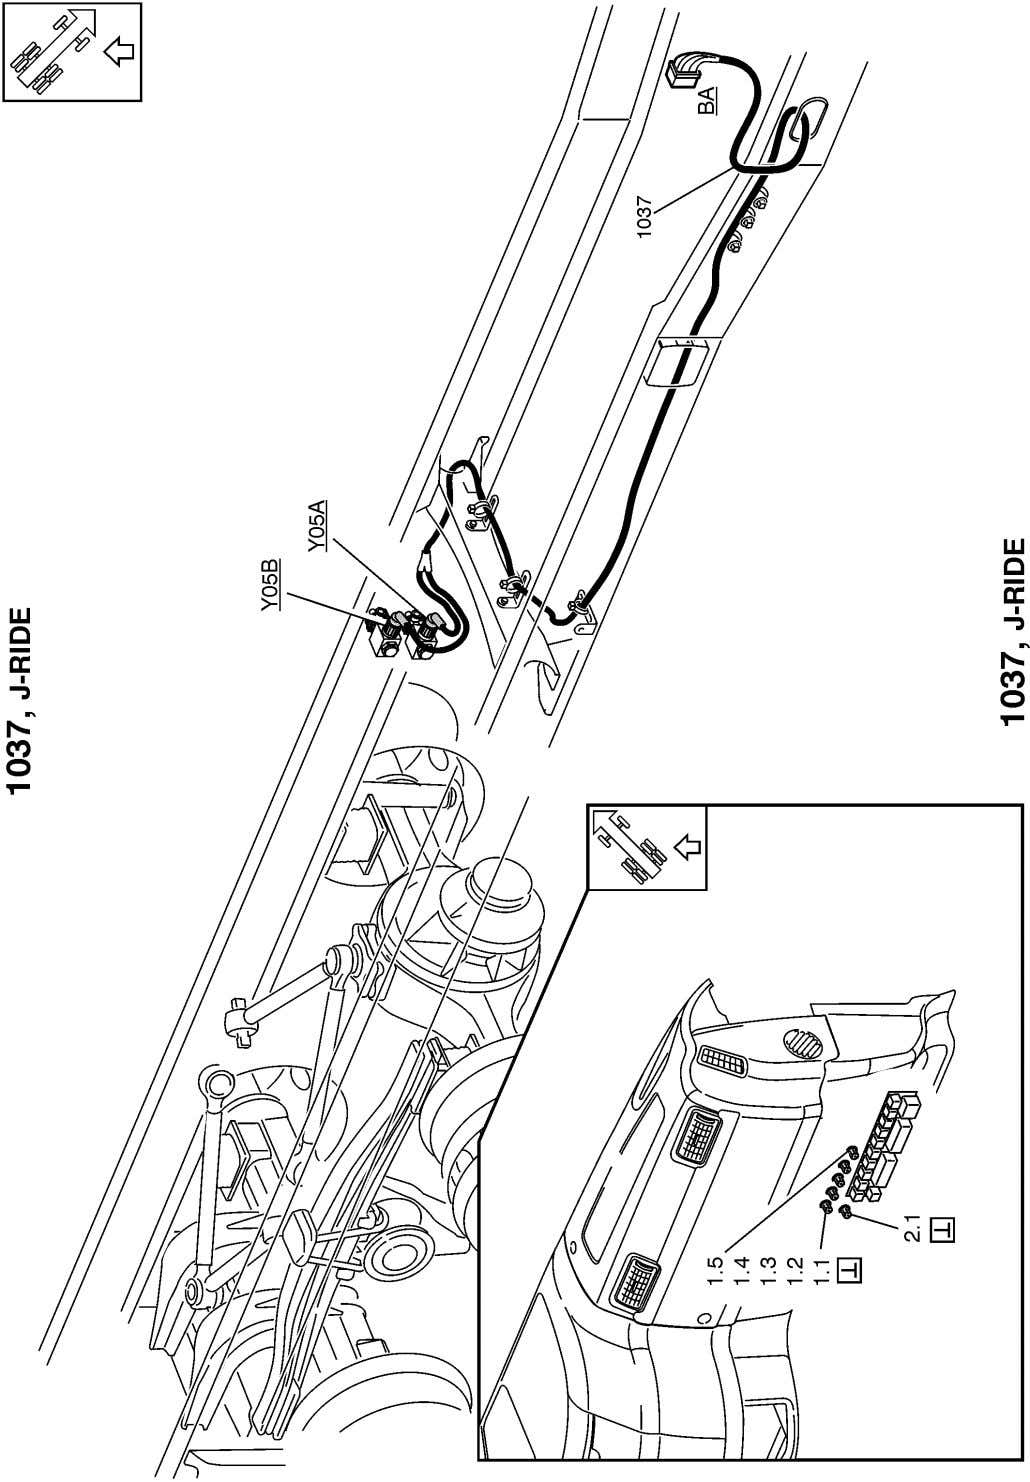 T3021578 Wiring diagram Page 165 (298)